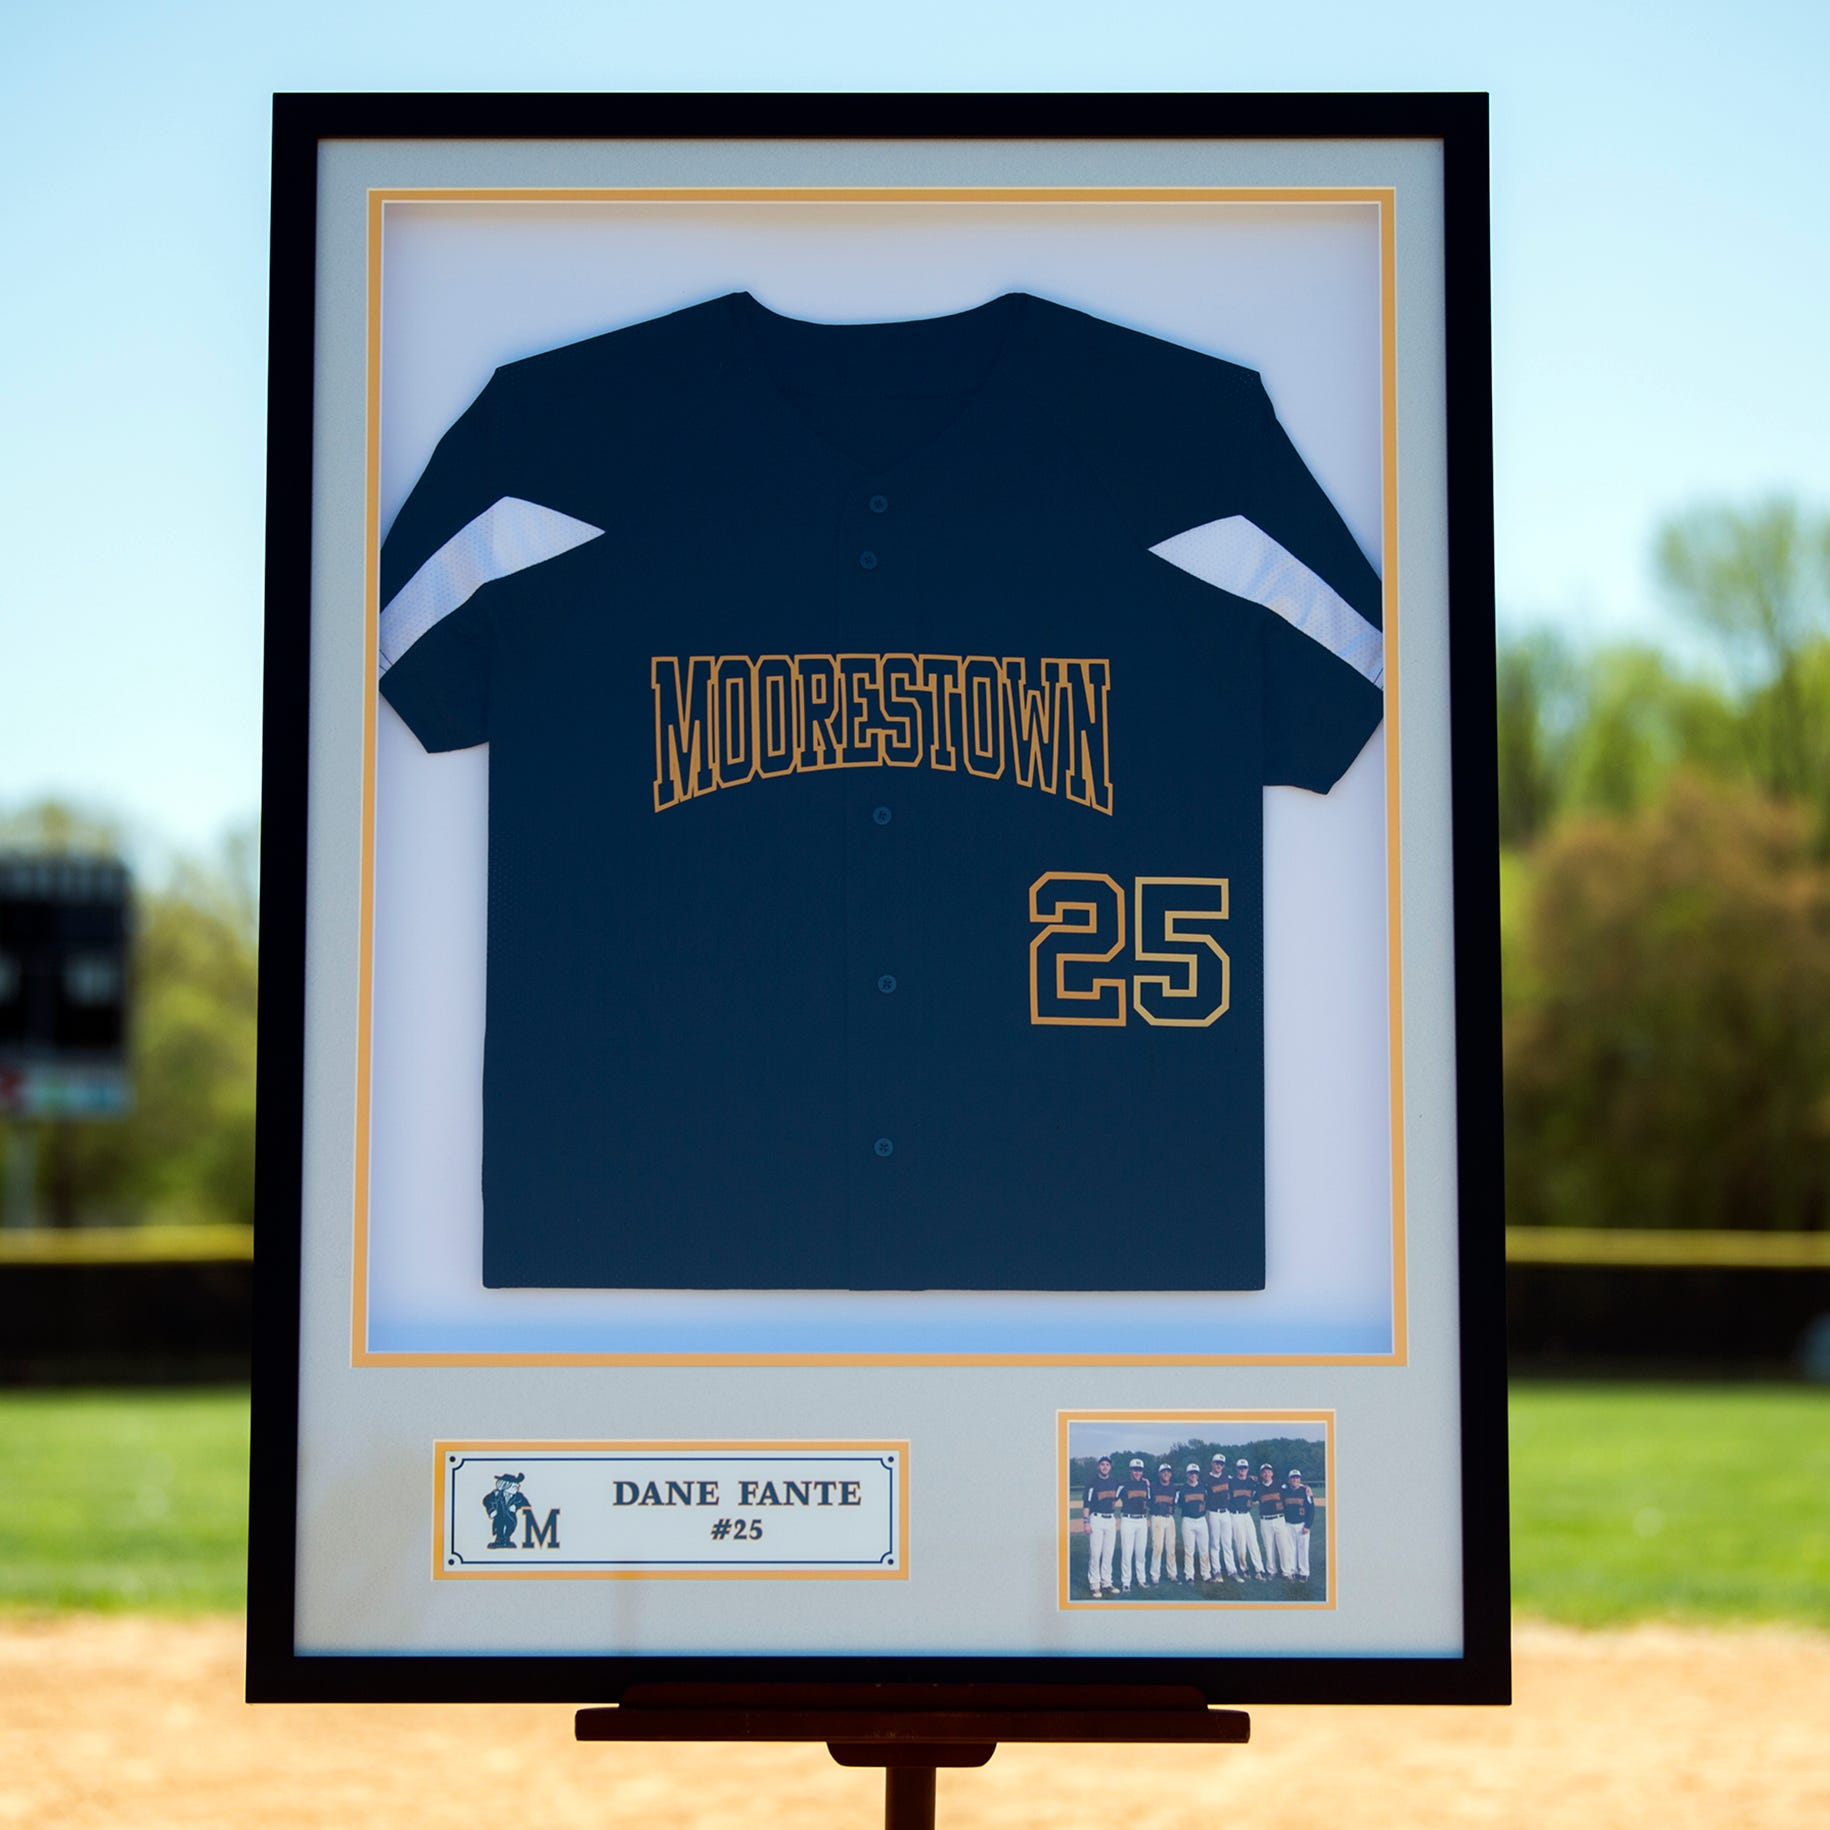 Moorestown naming baseball field after former player Dane Fante, who passed away in 2018